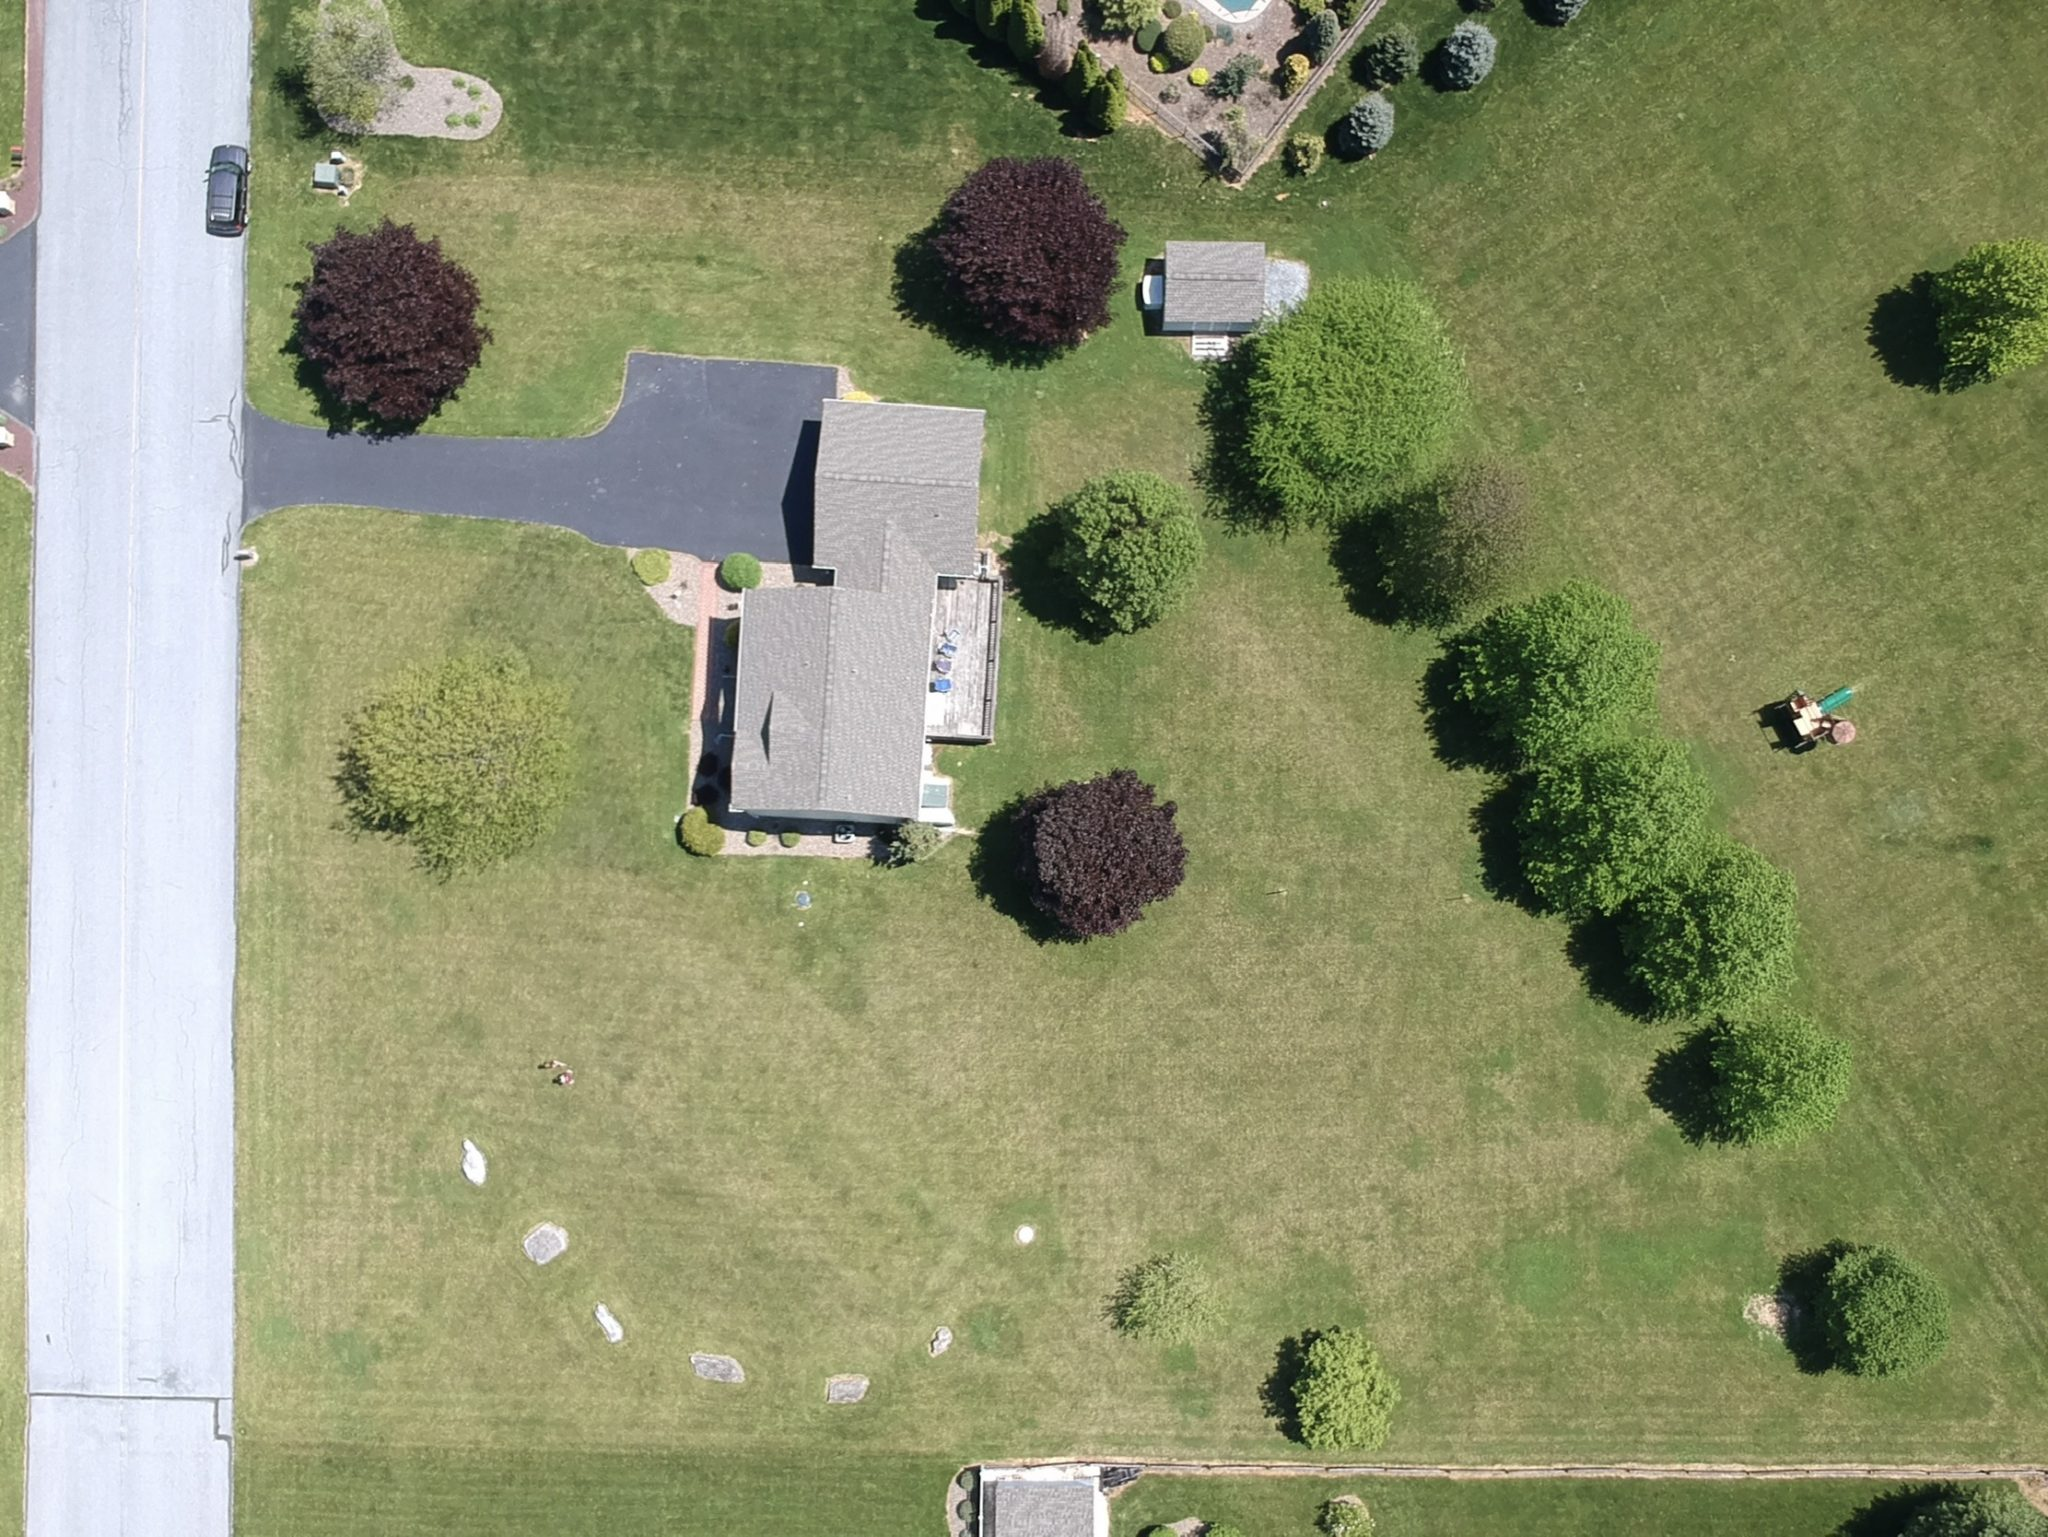 22 Norma Ln, Richland - Outside Overhead View